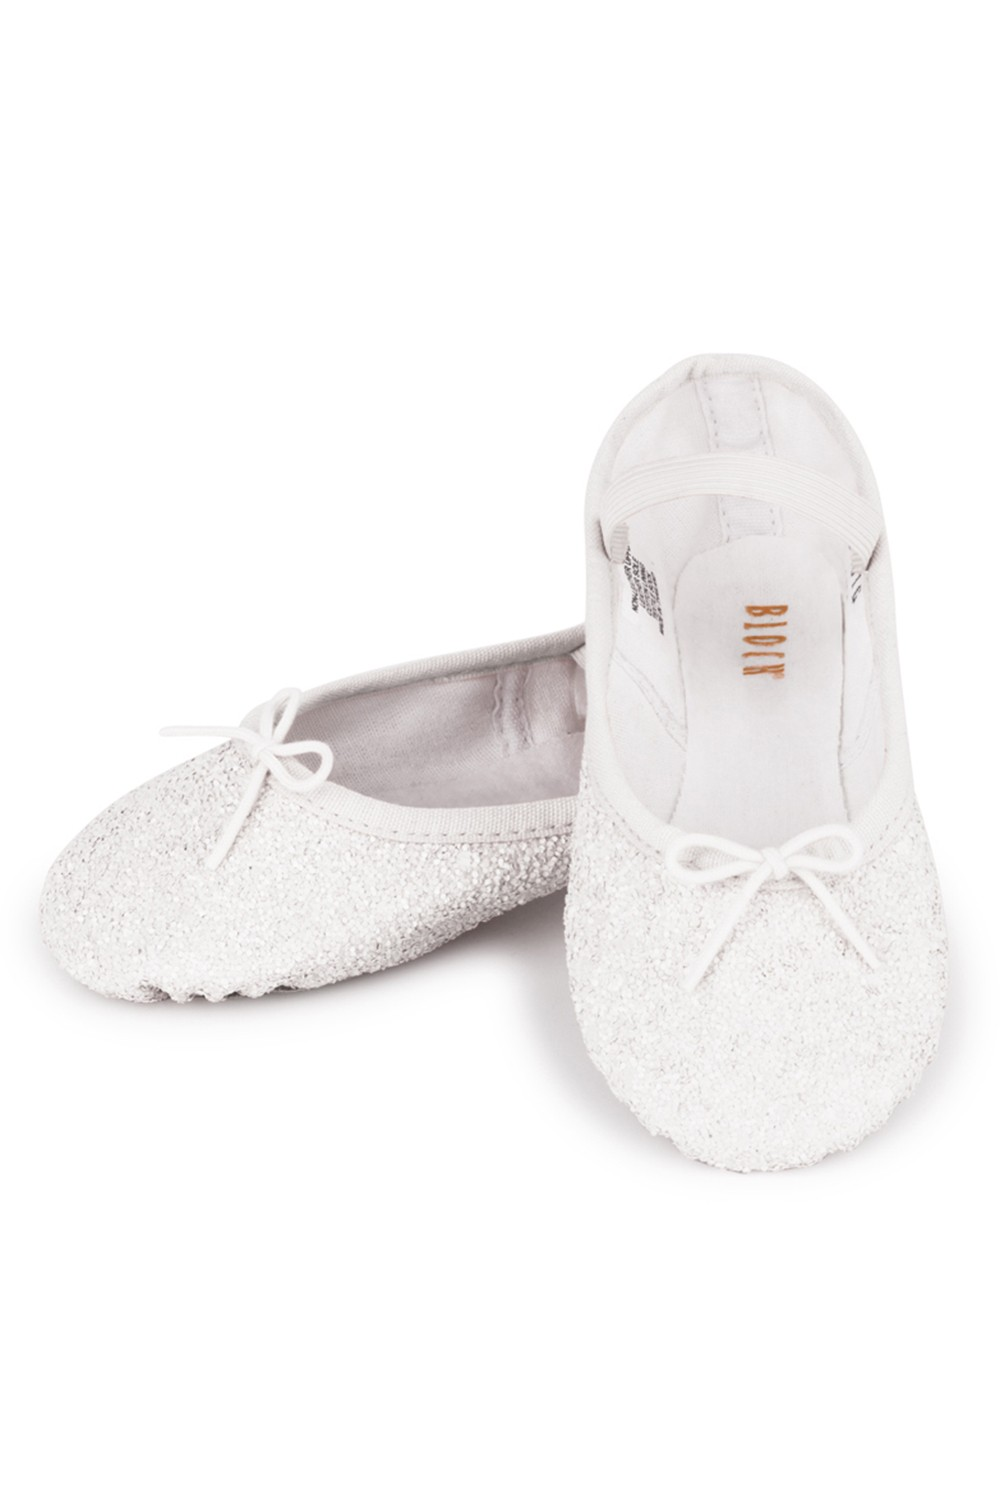 S0291t Sparkle Girl's Ballet Shoes